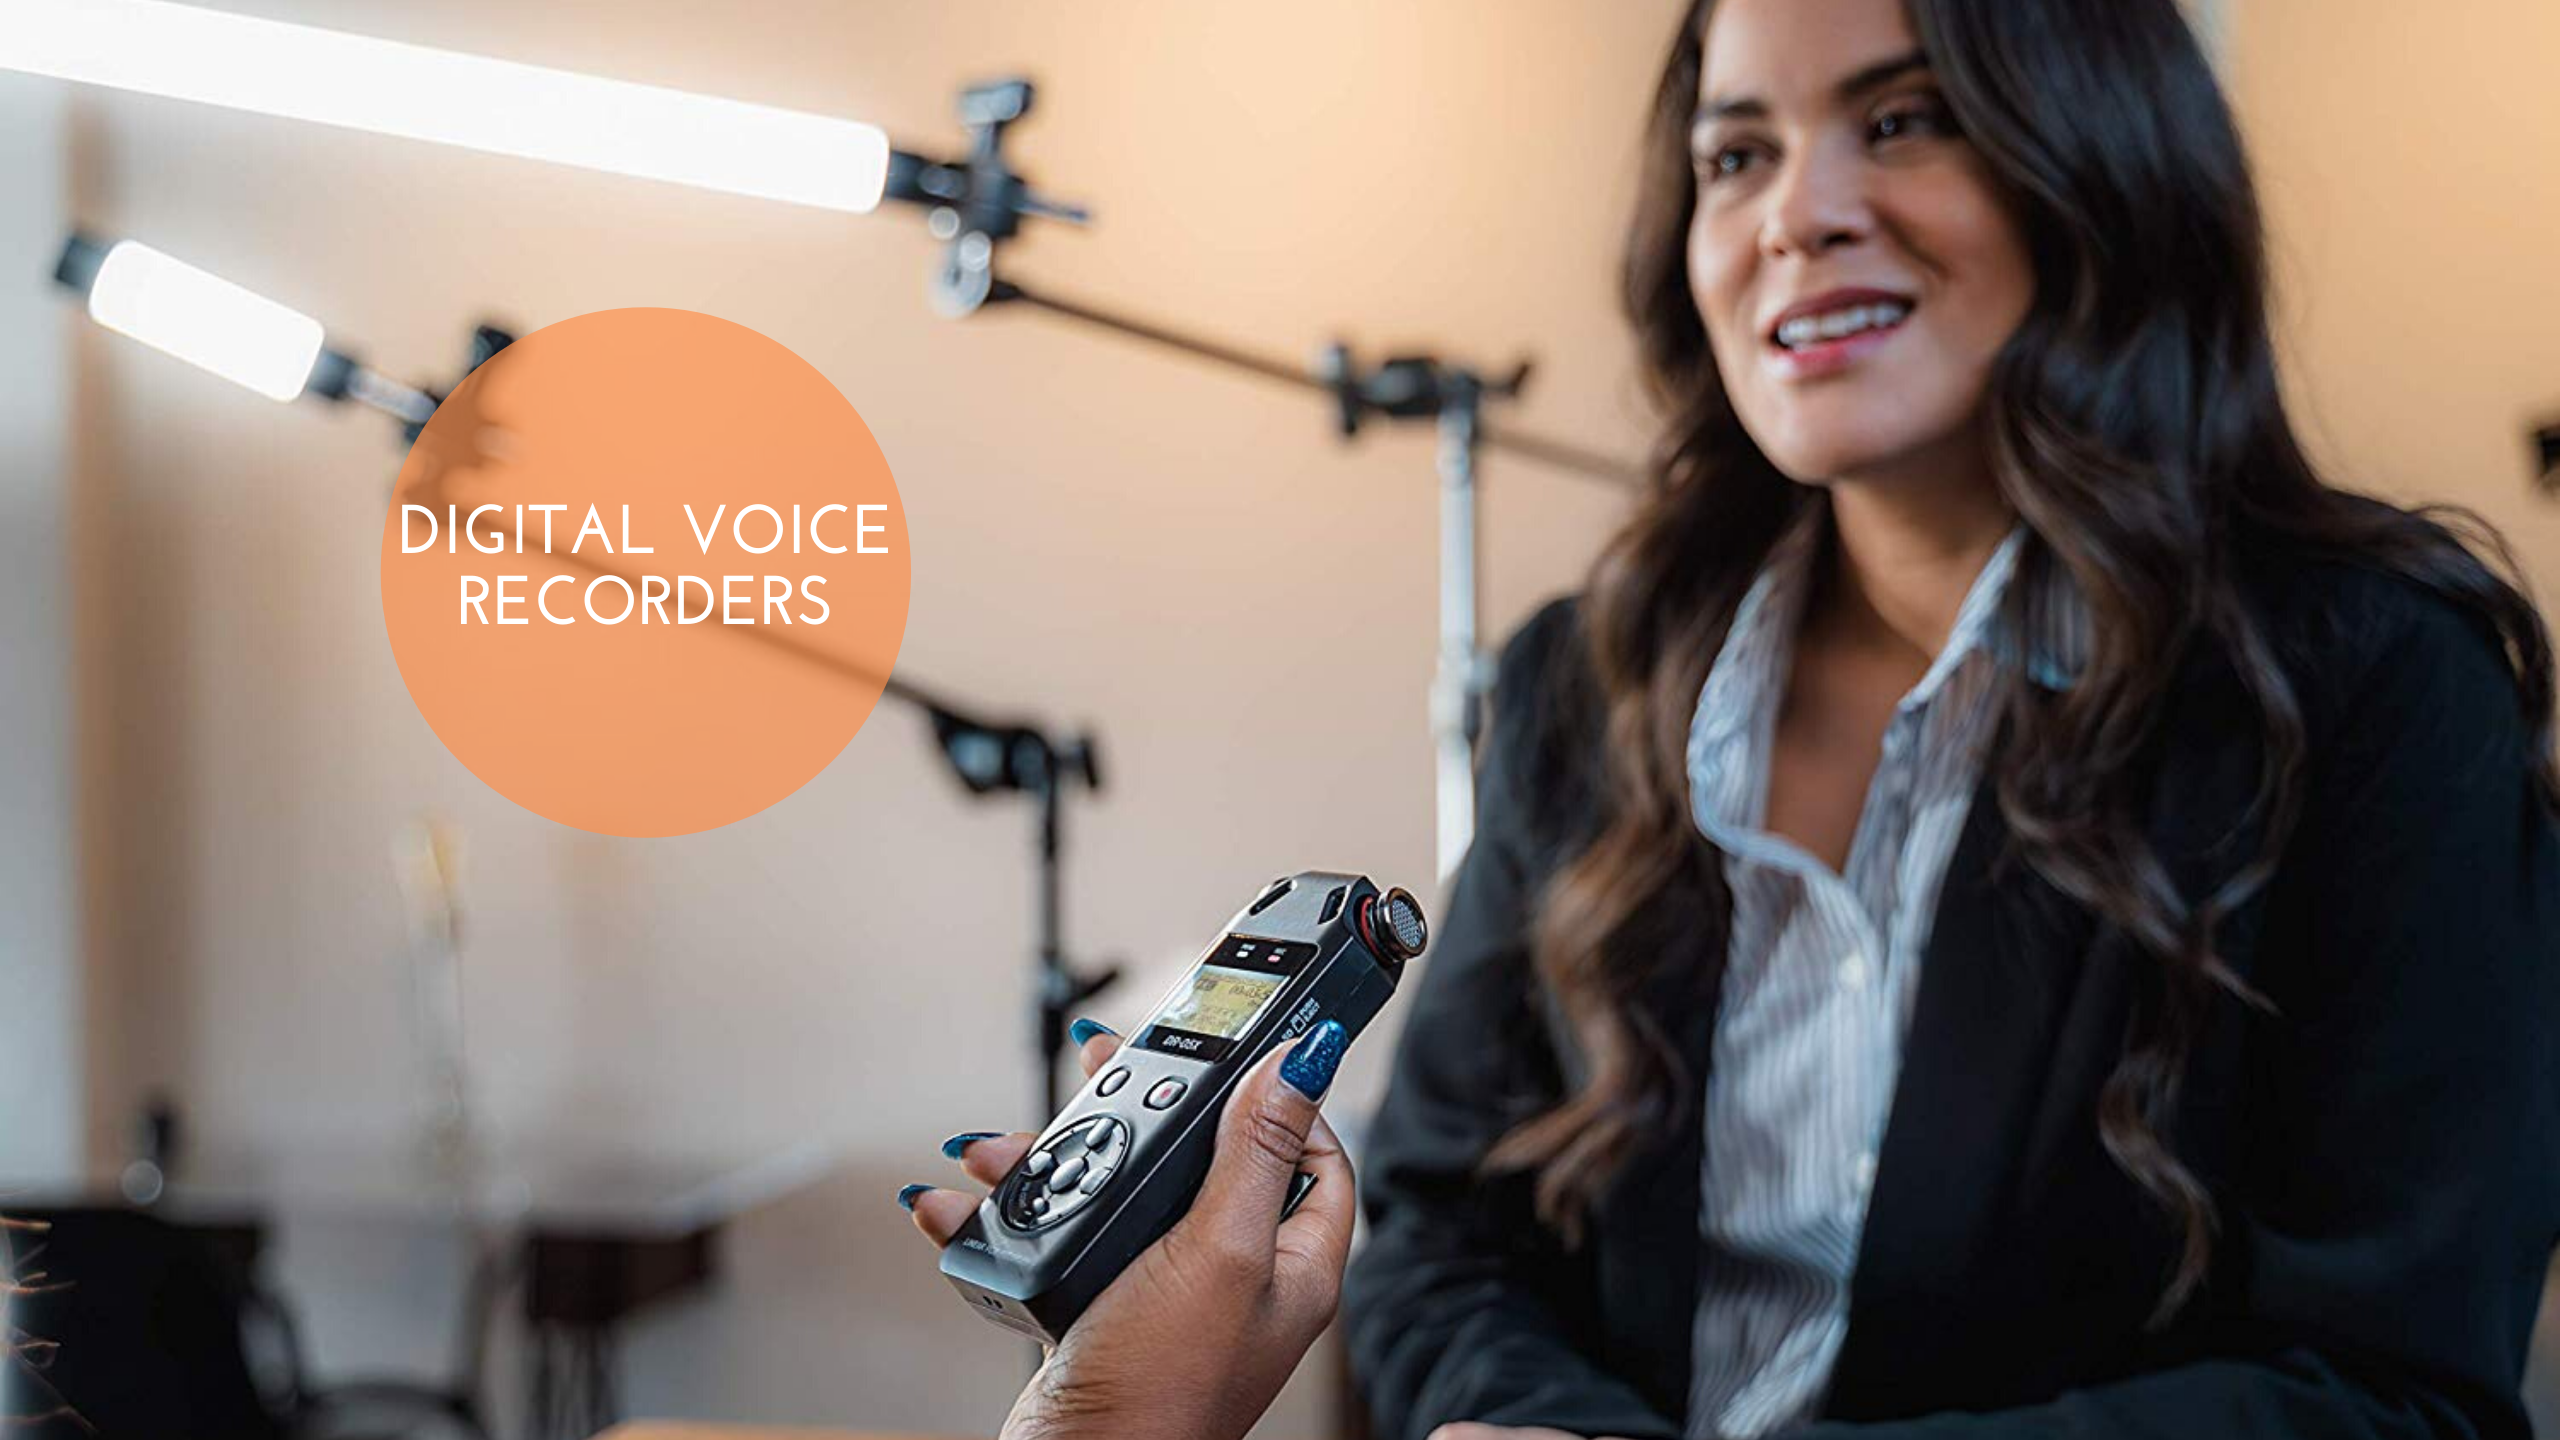 Top 10 Best Digital Voice Recorders In 2020 Reviews